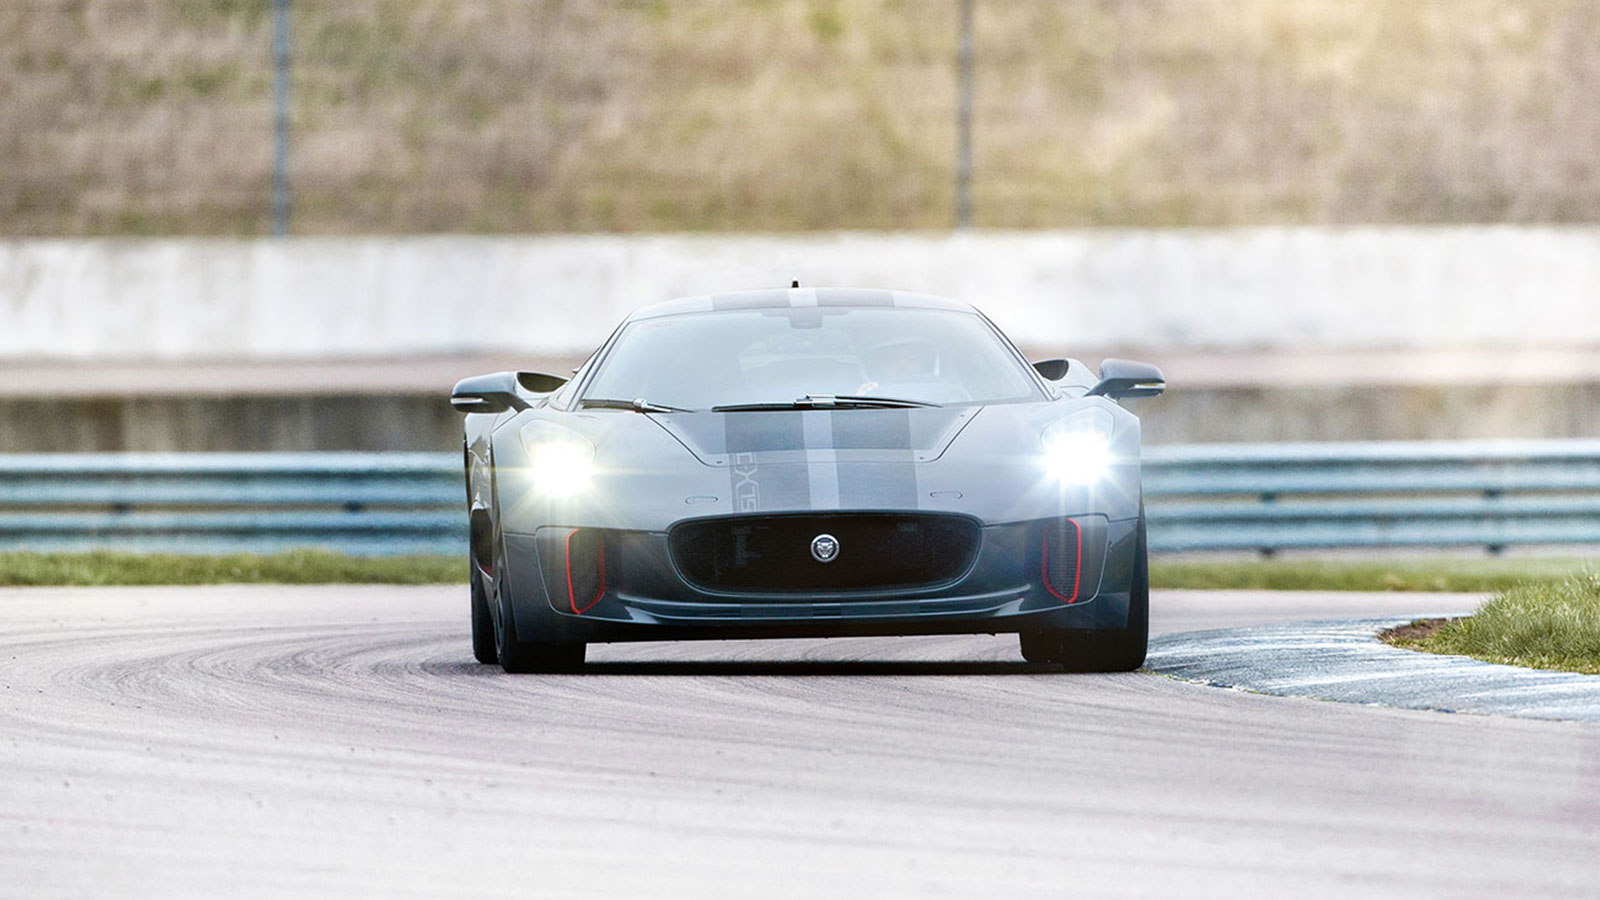 Jaguar C-X75 Driving on a race track.